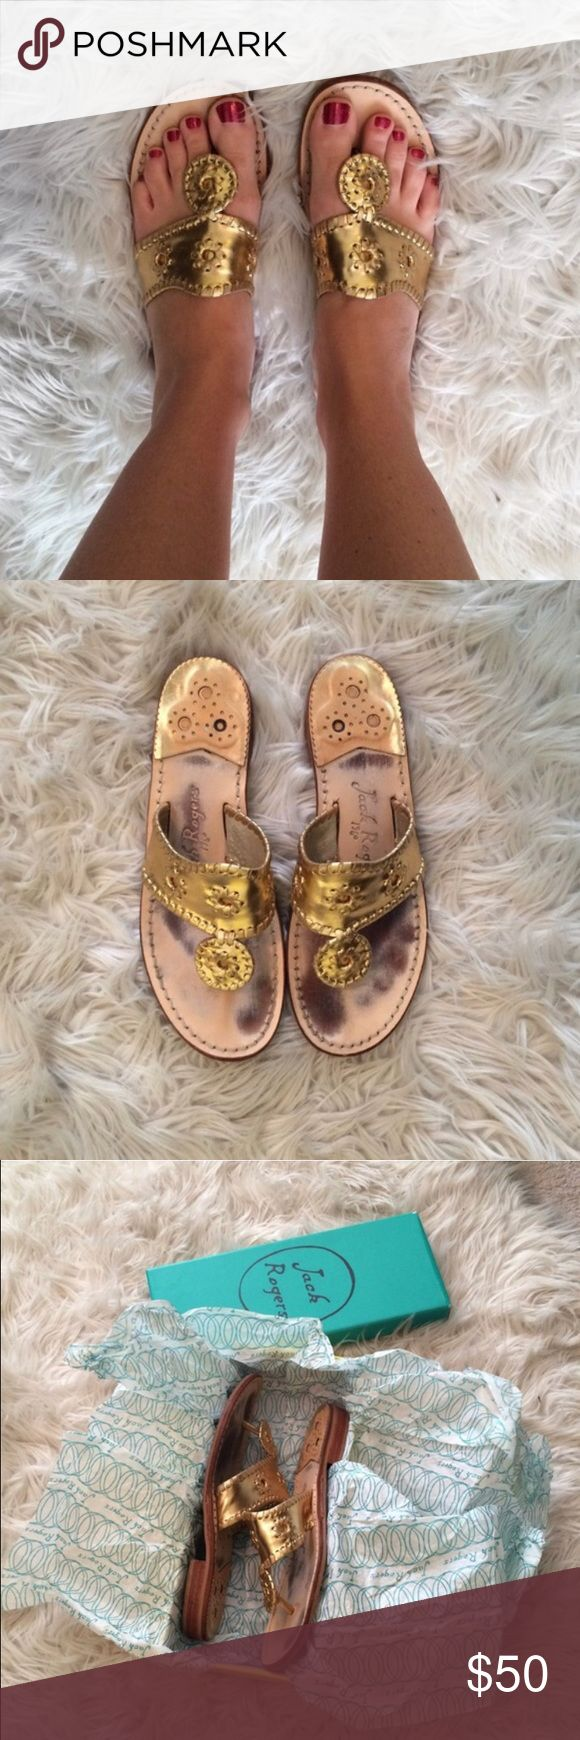 Jack Rogers Gold Flat Sandals Gold, size 8, Jack Rogers sandals. Well worn, but look new on. Ships in original box, from a smoke free home. Open to offers 😊 Jack Rogers Shoes Sandals